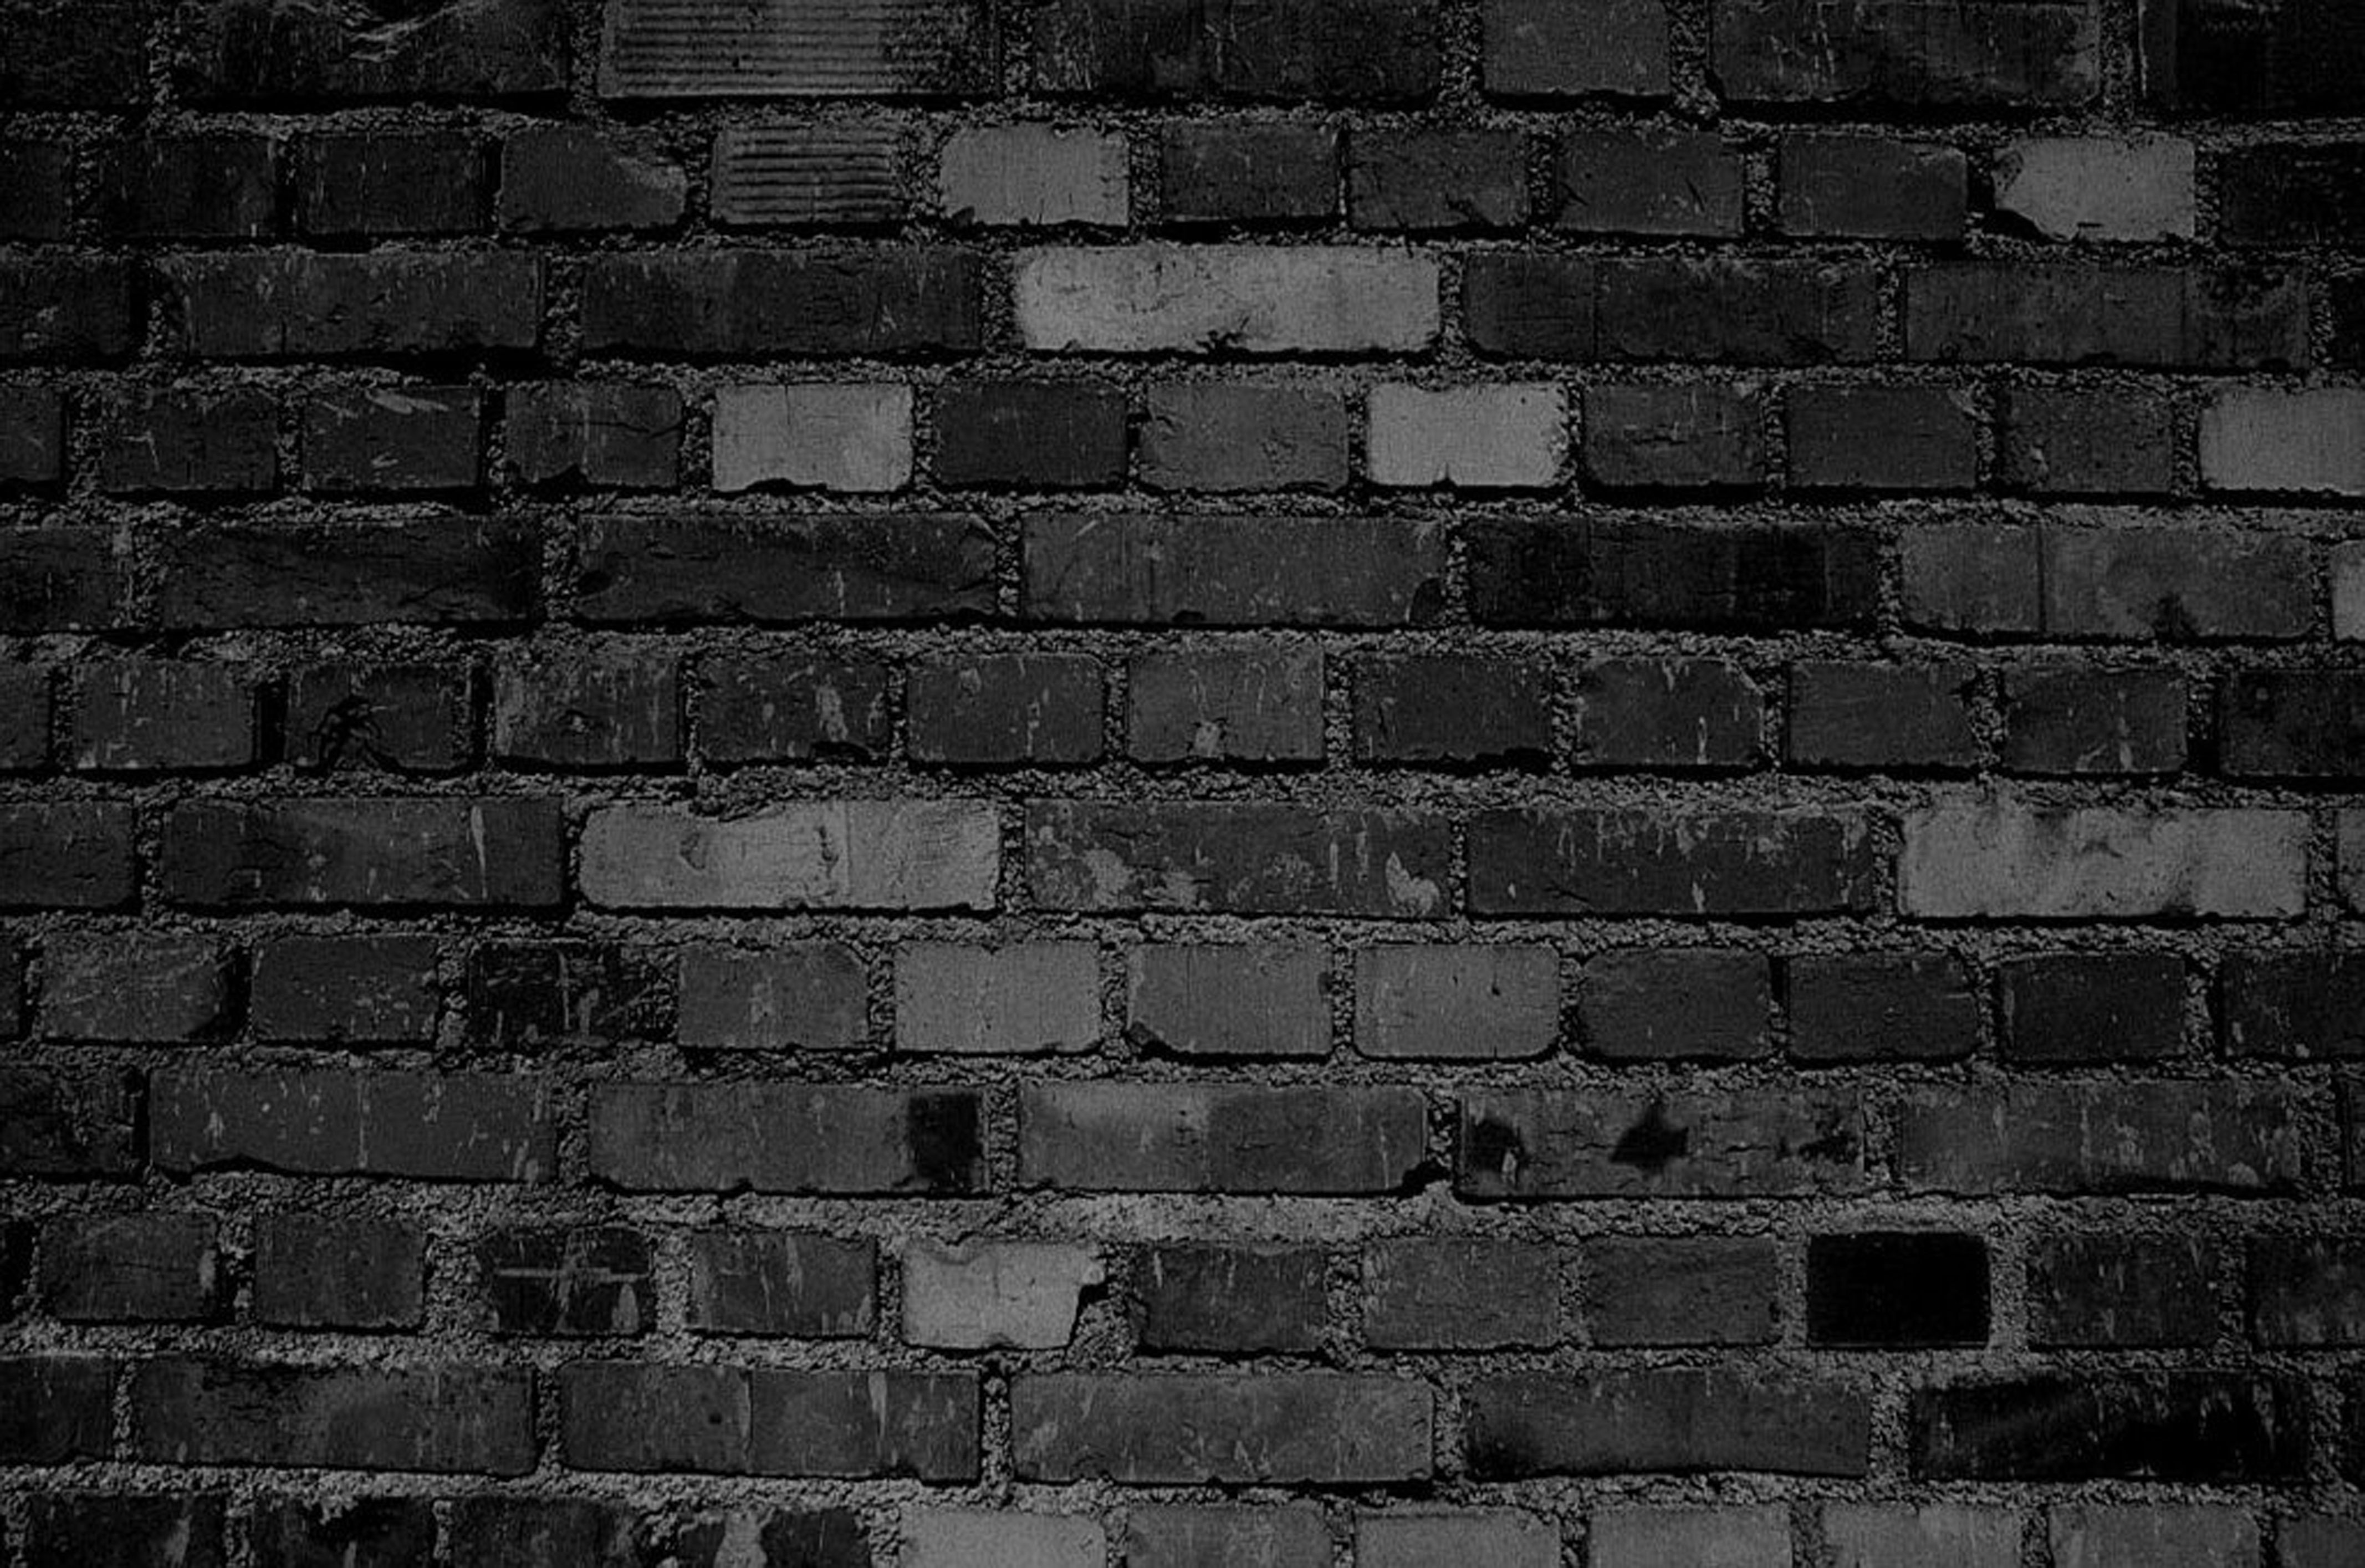 Brick Stone Wall Grey 4267x2829 Cool Background PicsTeal BackgroundDark